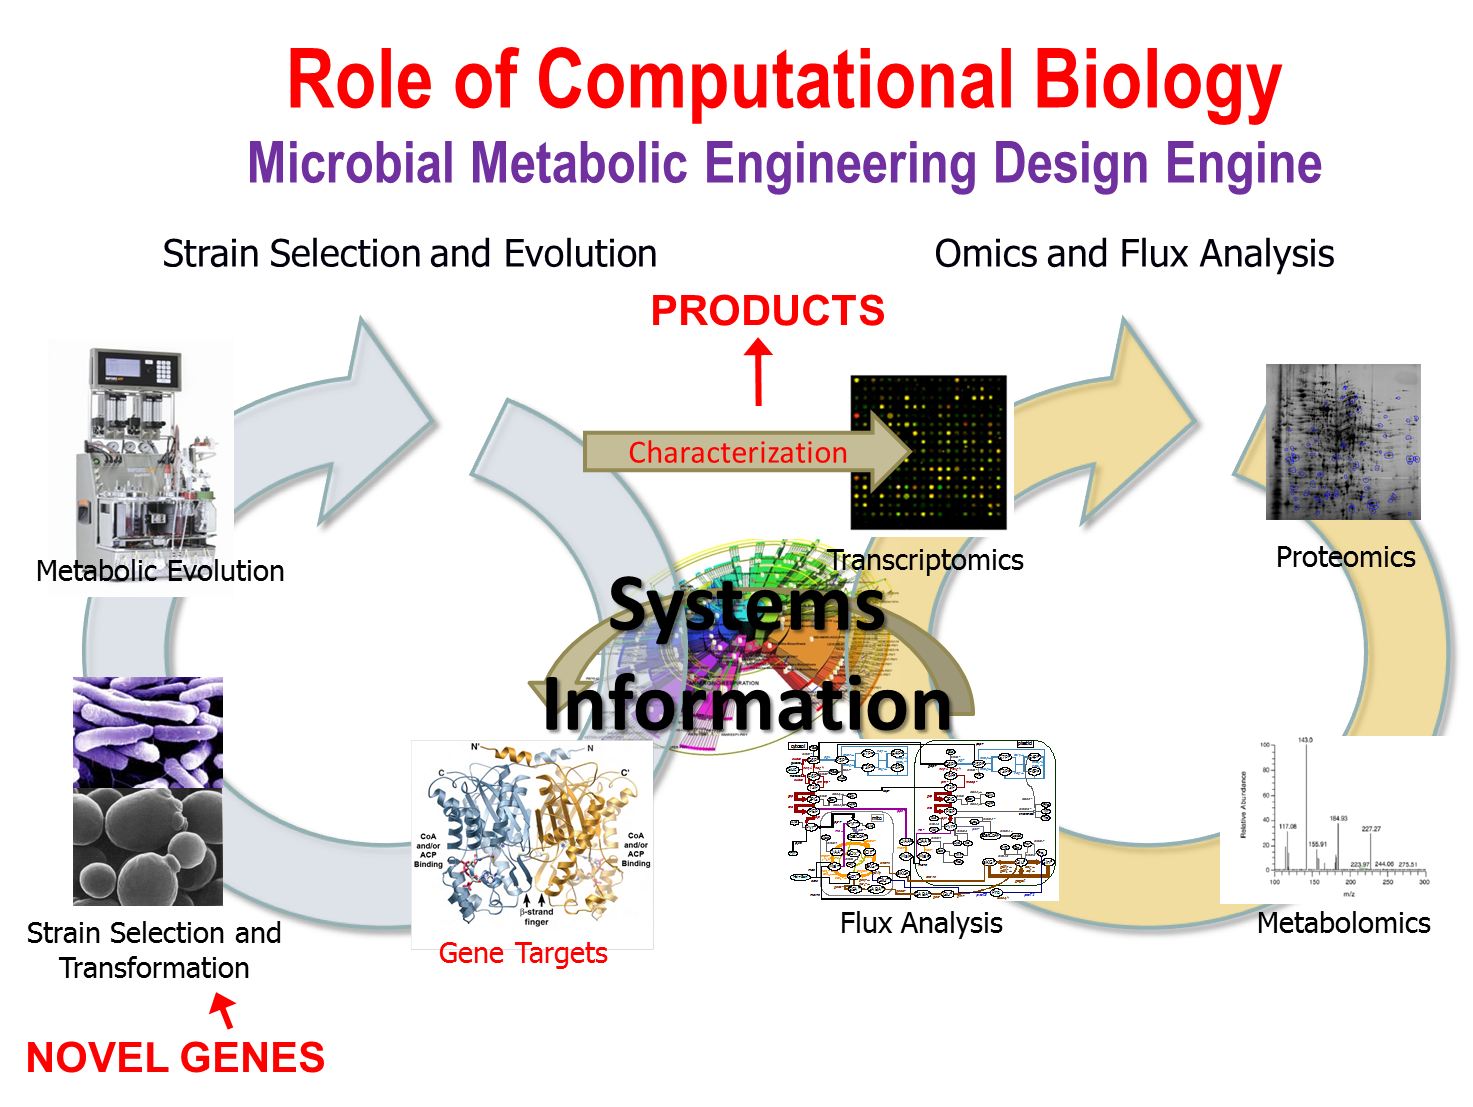 thesis systems biology The physiology, biophysics and systems biology nrsa from the national institute on drug abuse to continue work on his thesis project in the lab of dr.